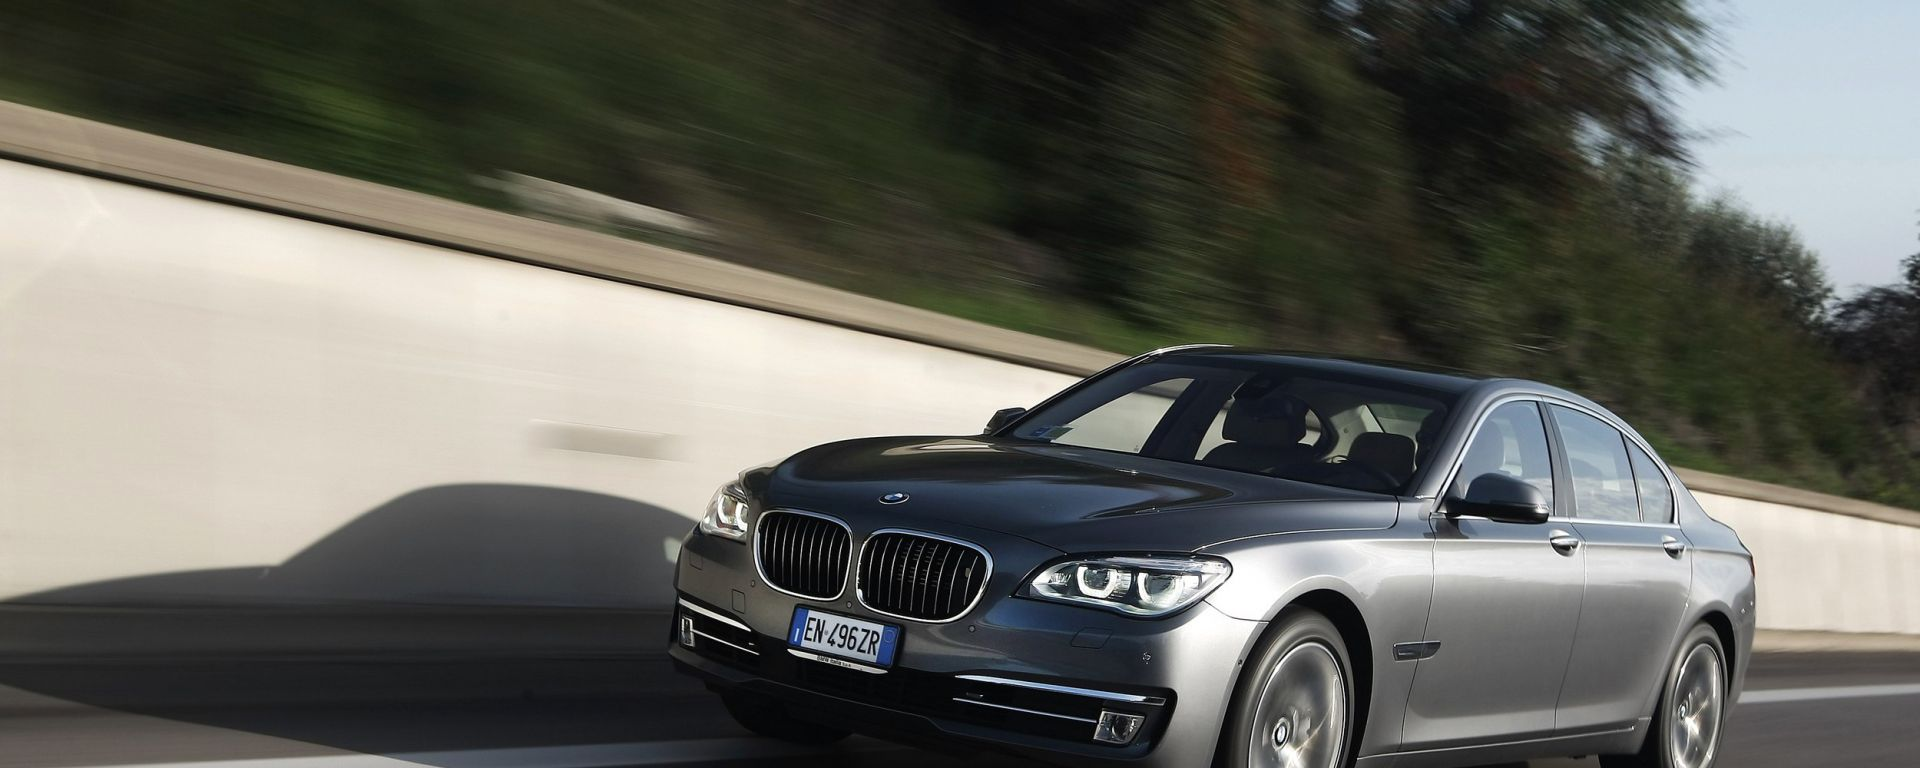 BMW Serie 7 2013, ora anche in video